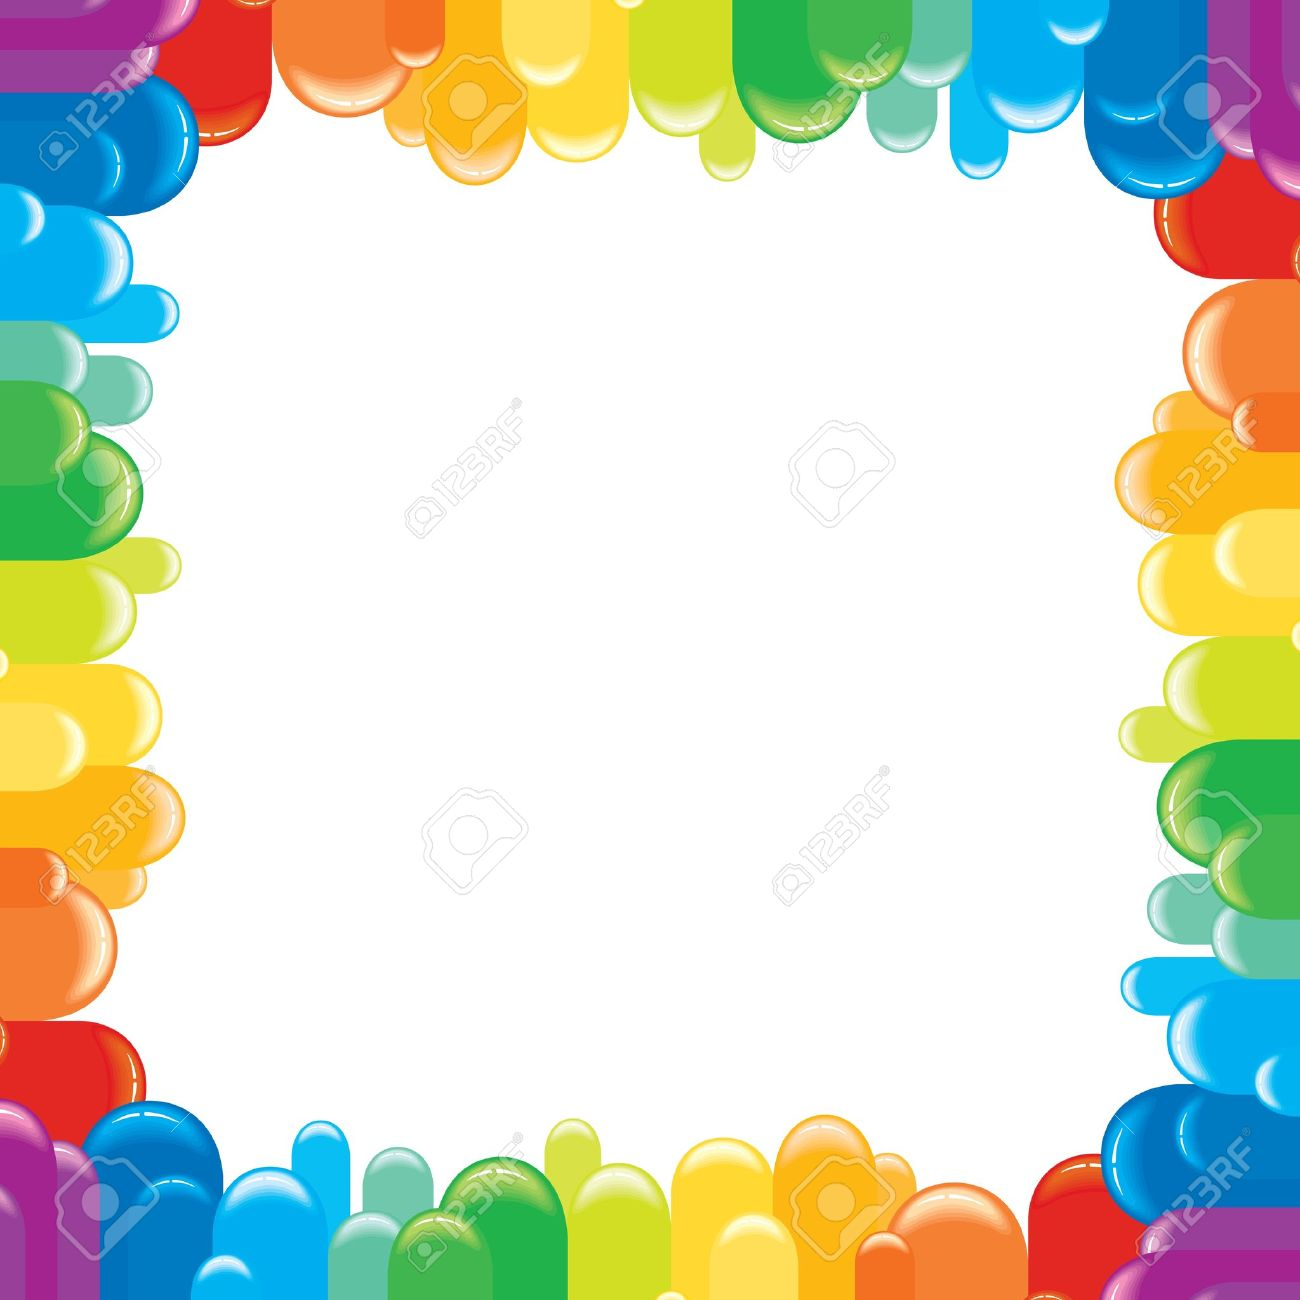 Funky Colorful Frame Vector Illustration Royalty Free Cliparts ...